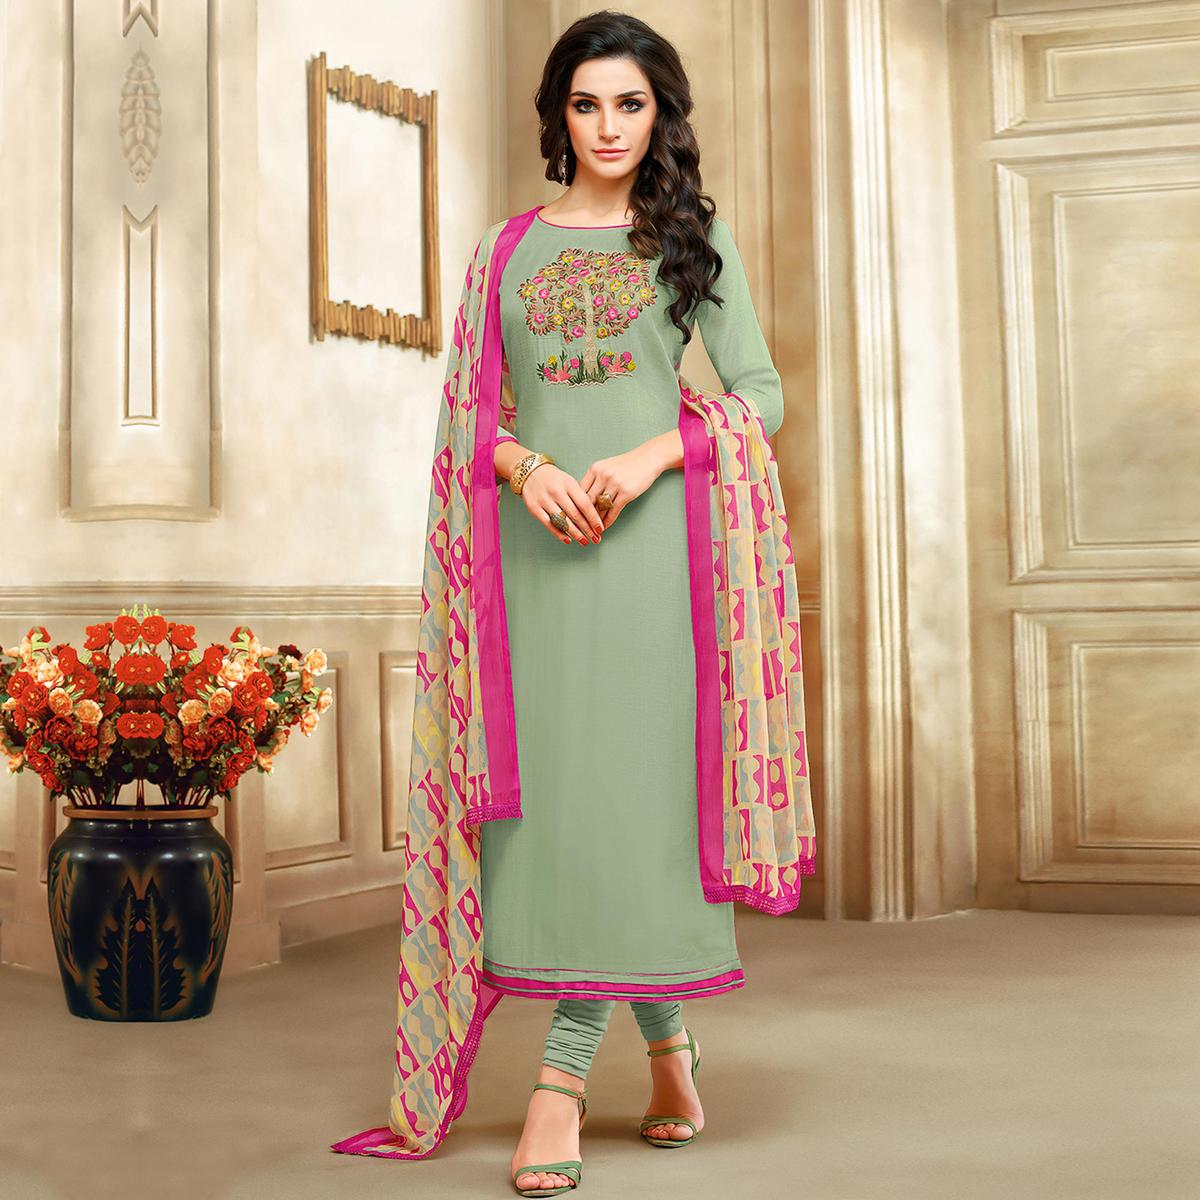 85a9c58b4b Buy Innovative Mint Green Colored Embroidered Chanderi Silk Suit Online  India, Best Prices, Reviews - Peachmode